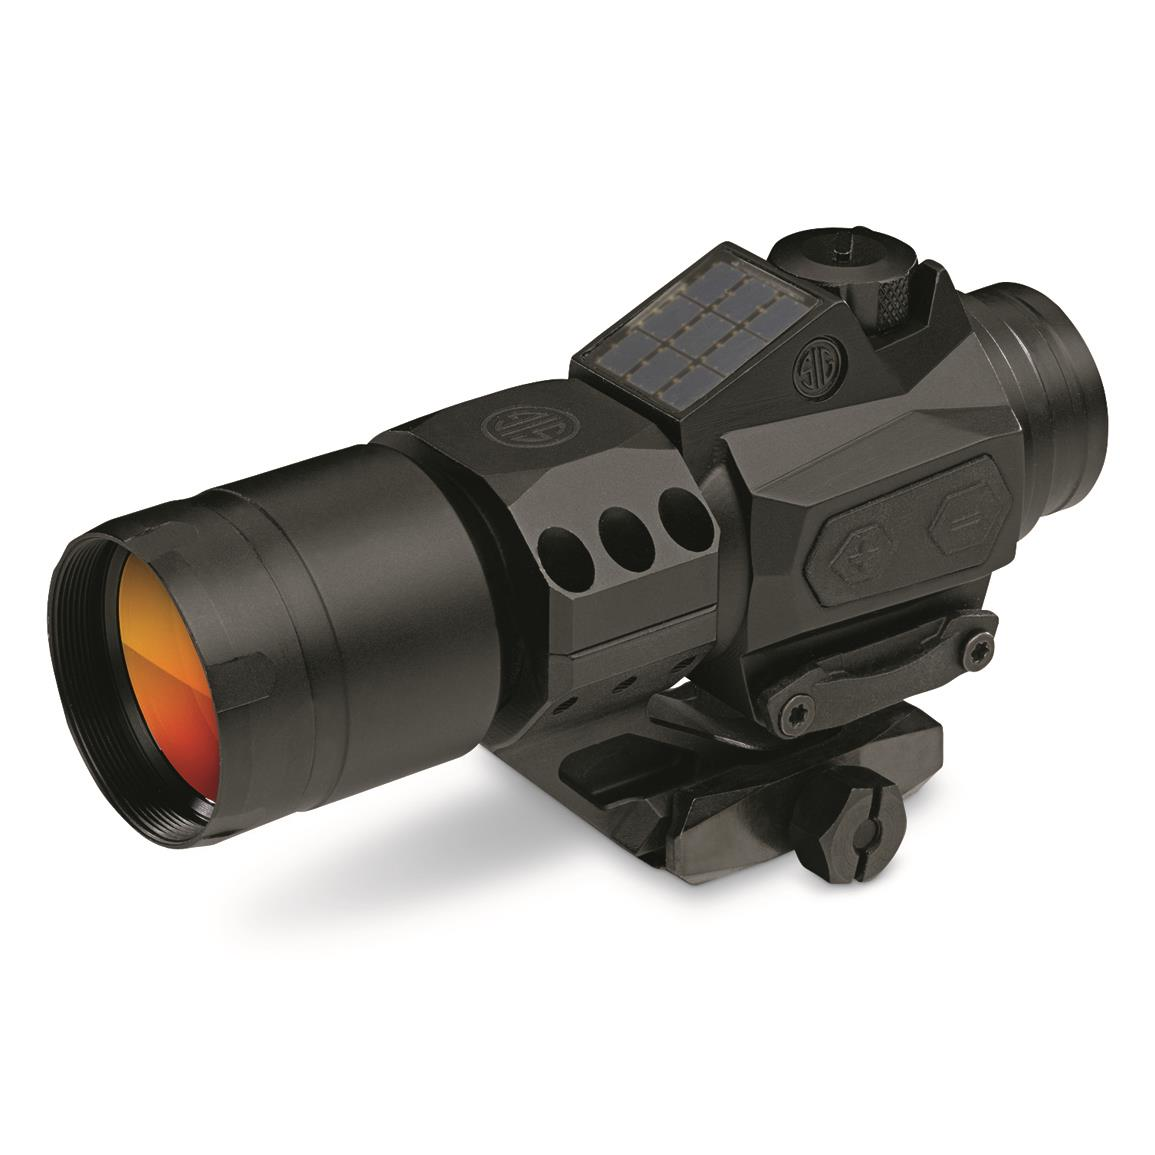 SIG SAUER Romeo6T, 1x30mm, 1 MOA, Full Size Red Dot Sight